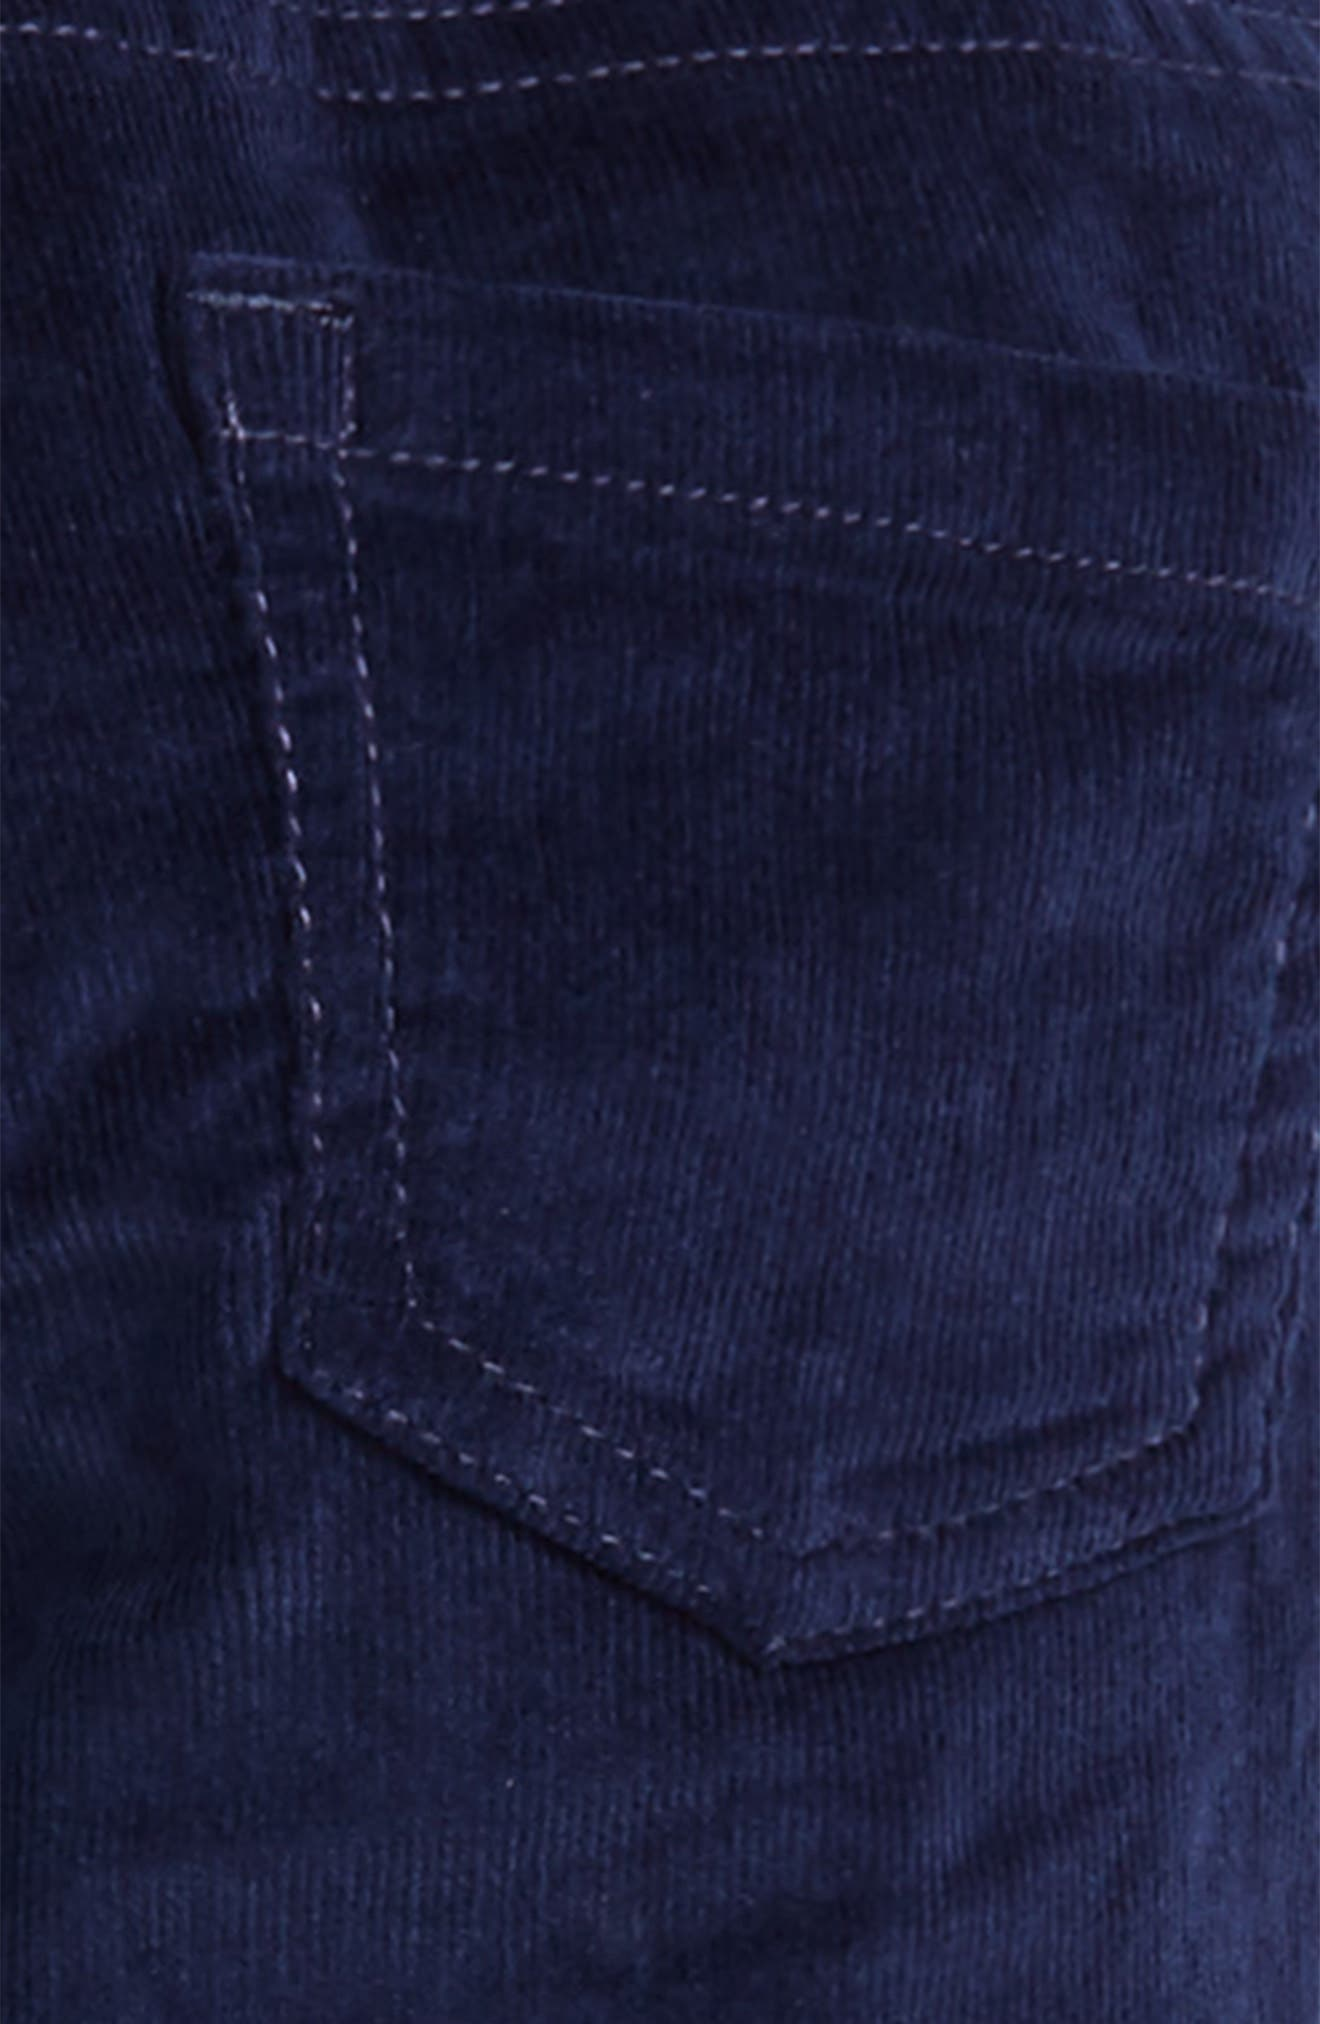 Corduroy Leggings,                             Alternate thumbnail 3, color,                             414